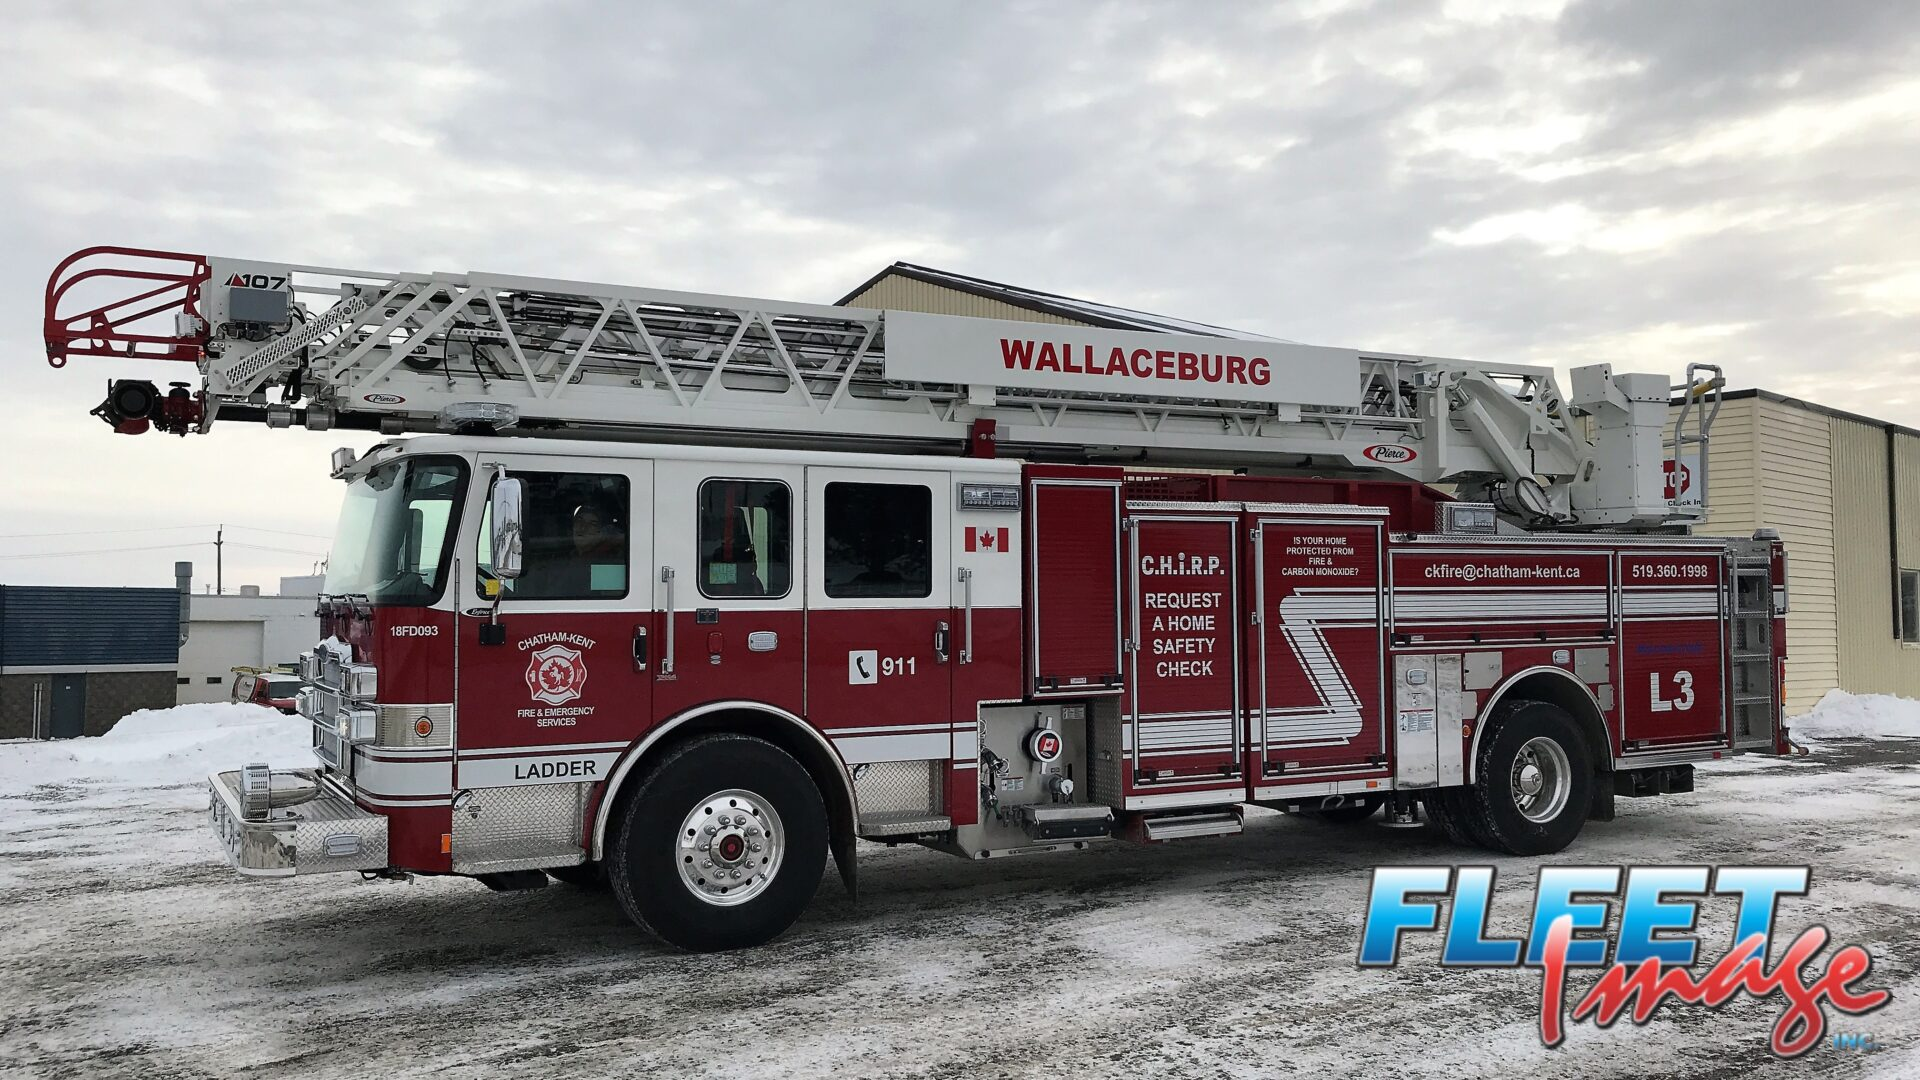 WALLACEBURG decal on a fire truck